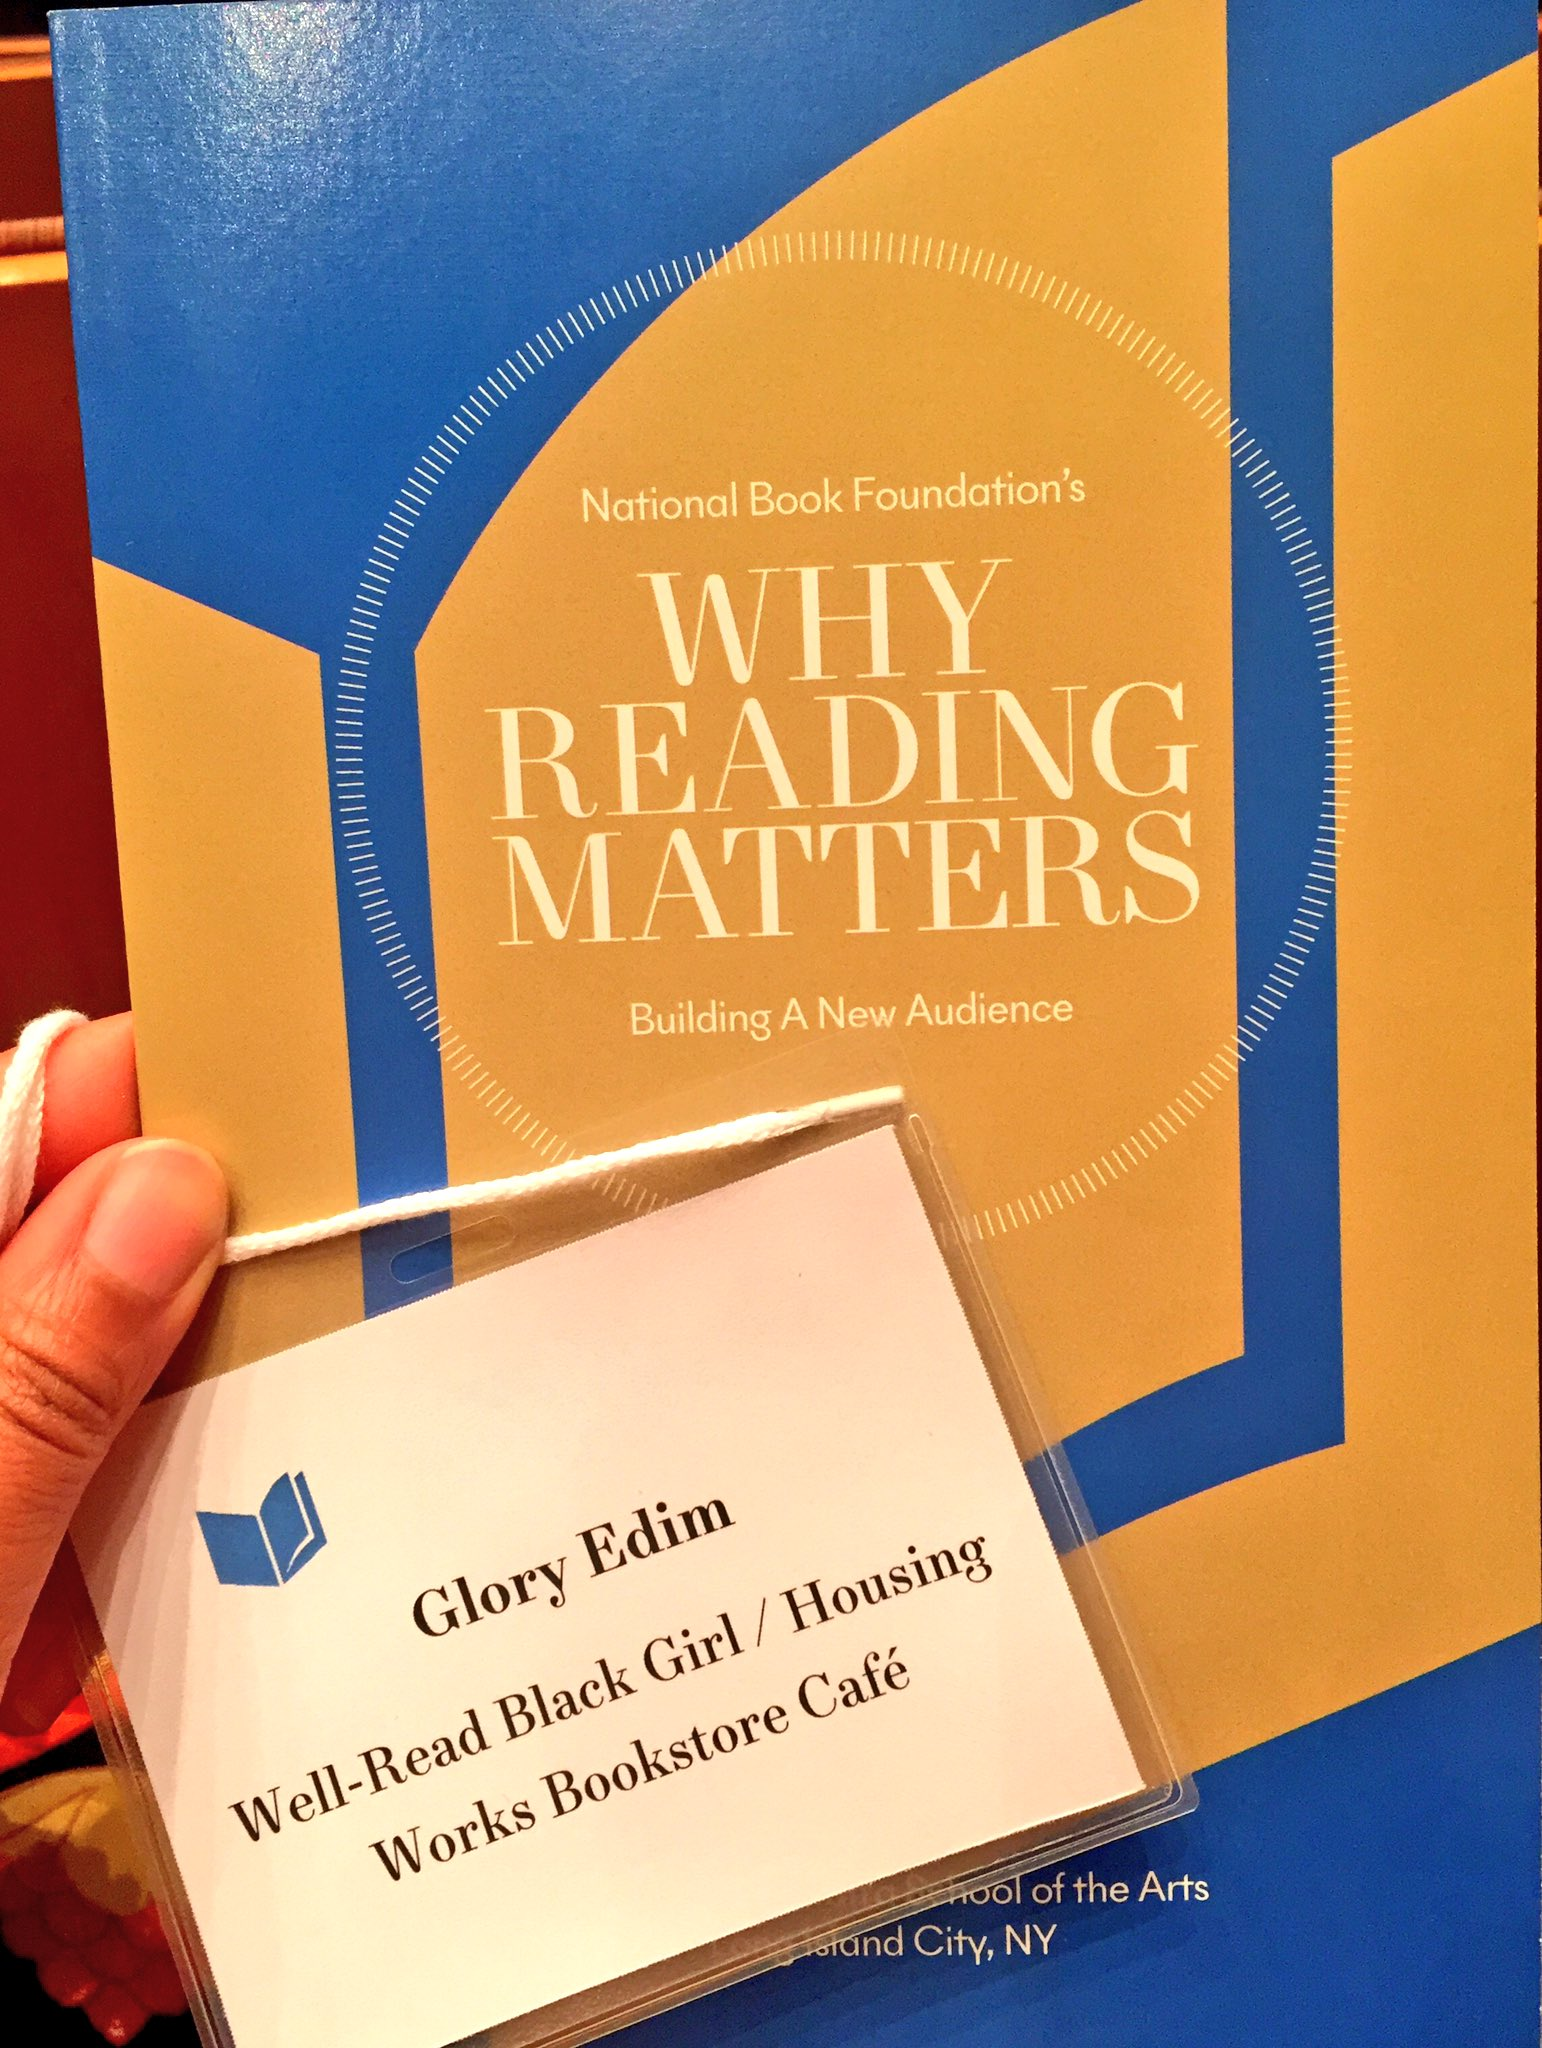 """""""Books need readers and readers need exposure to books that reflect and enrich their lives.""""  Thank you, @nationalbook! #ReadingMatters https://t.co/ykgltMRqwN"""